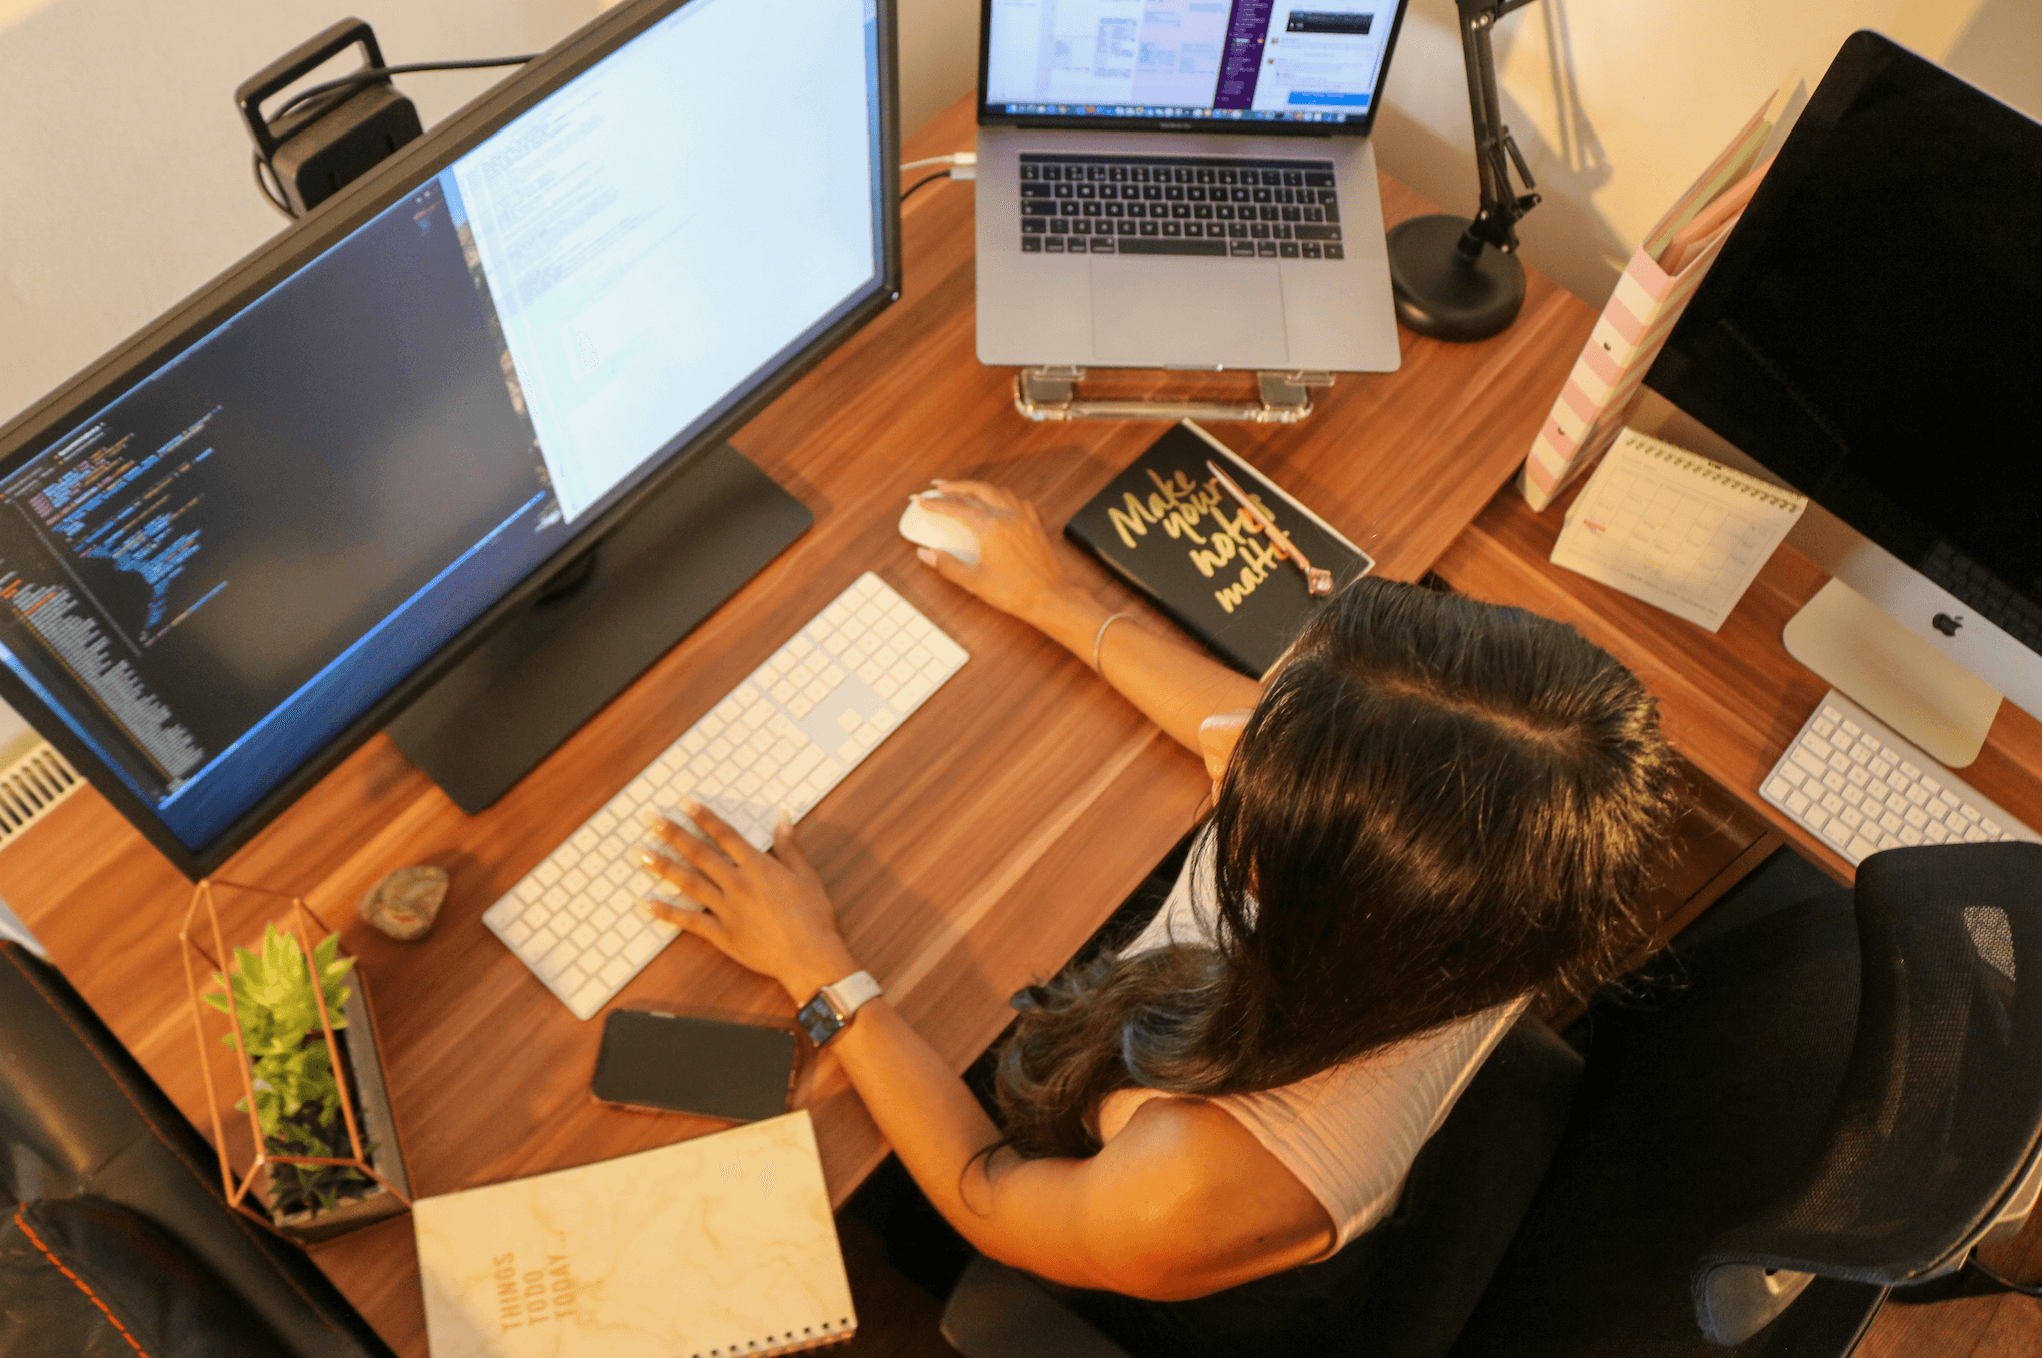 Arial shot of Simeron working at her desk